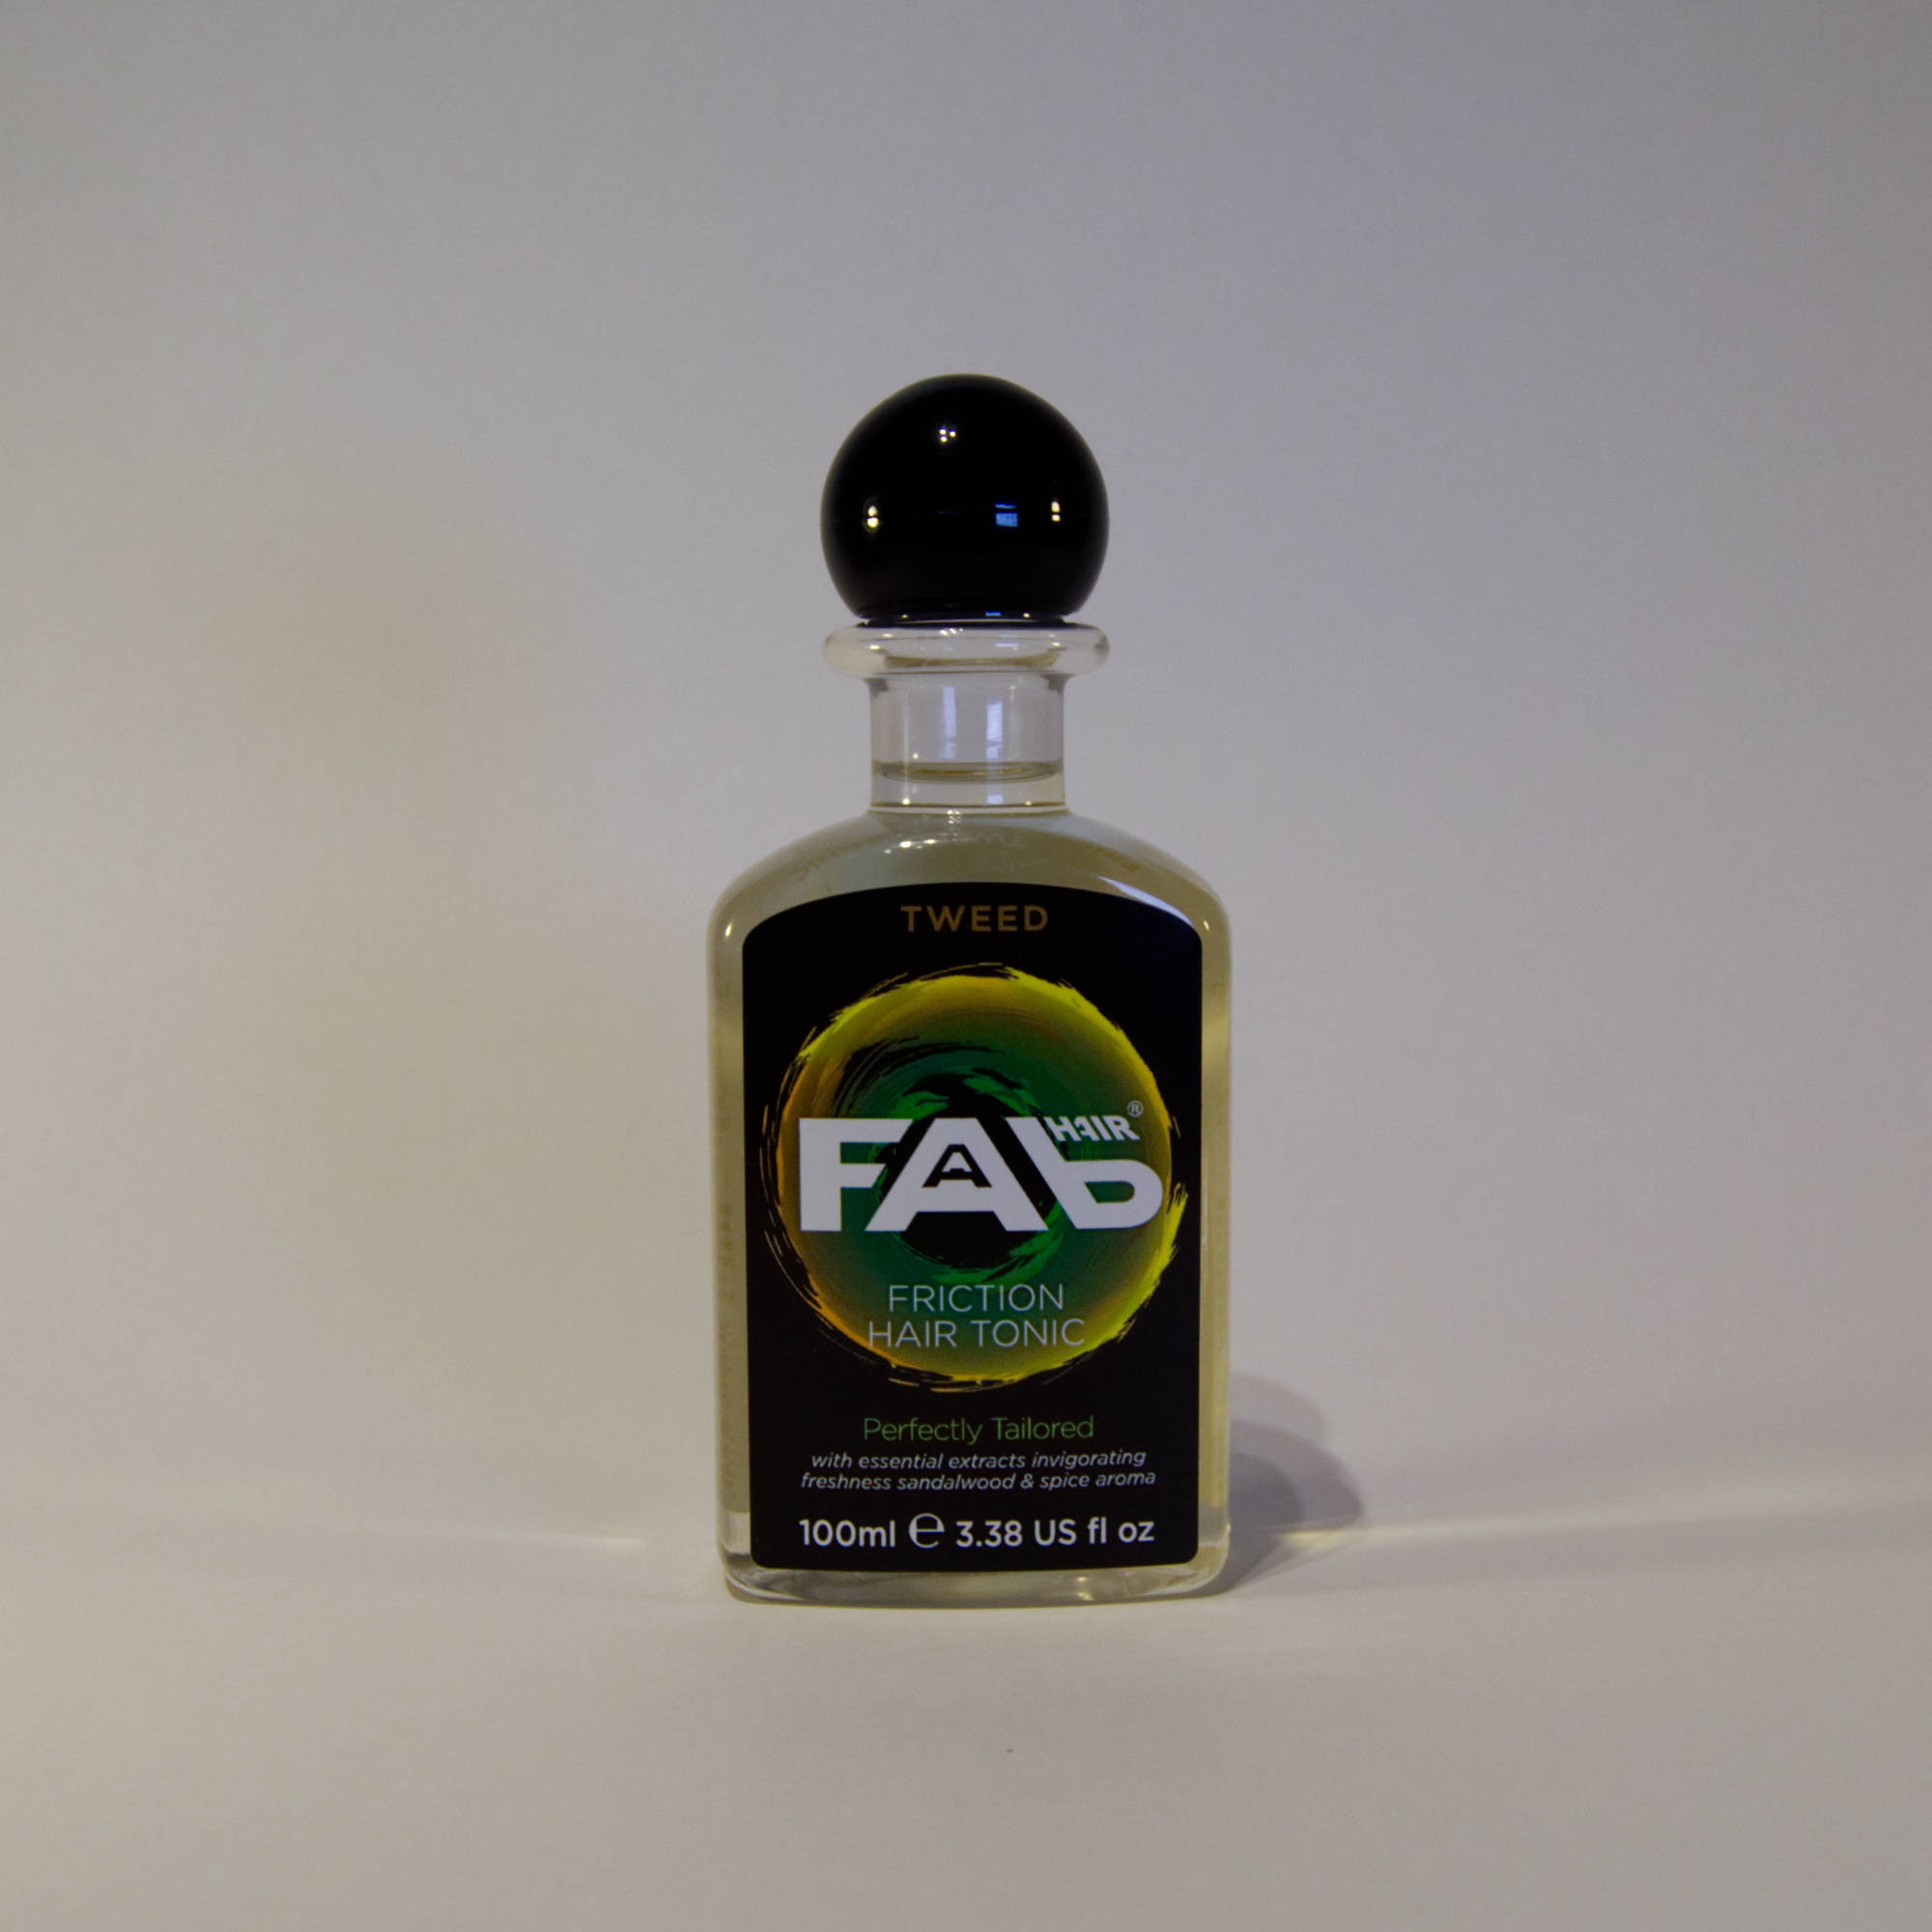 100ml bottle of Tweed flavoured FAB friction hair tonic